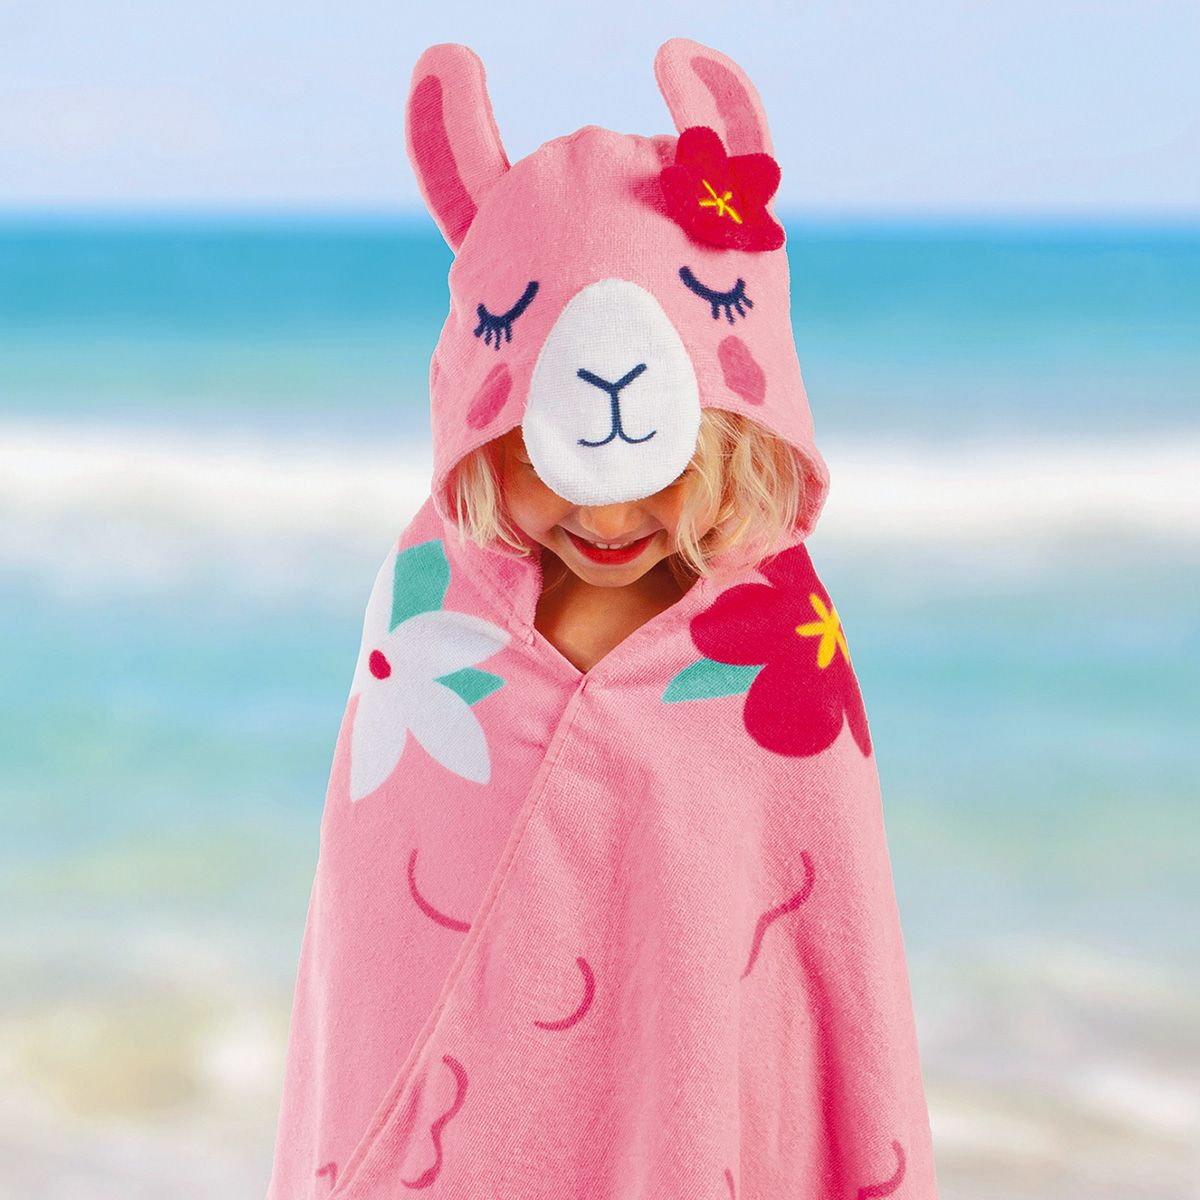 Personalized Hooded Llama Towel by Stephen Joseph®